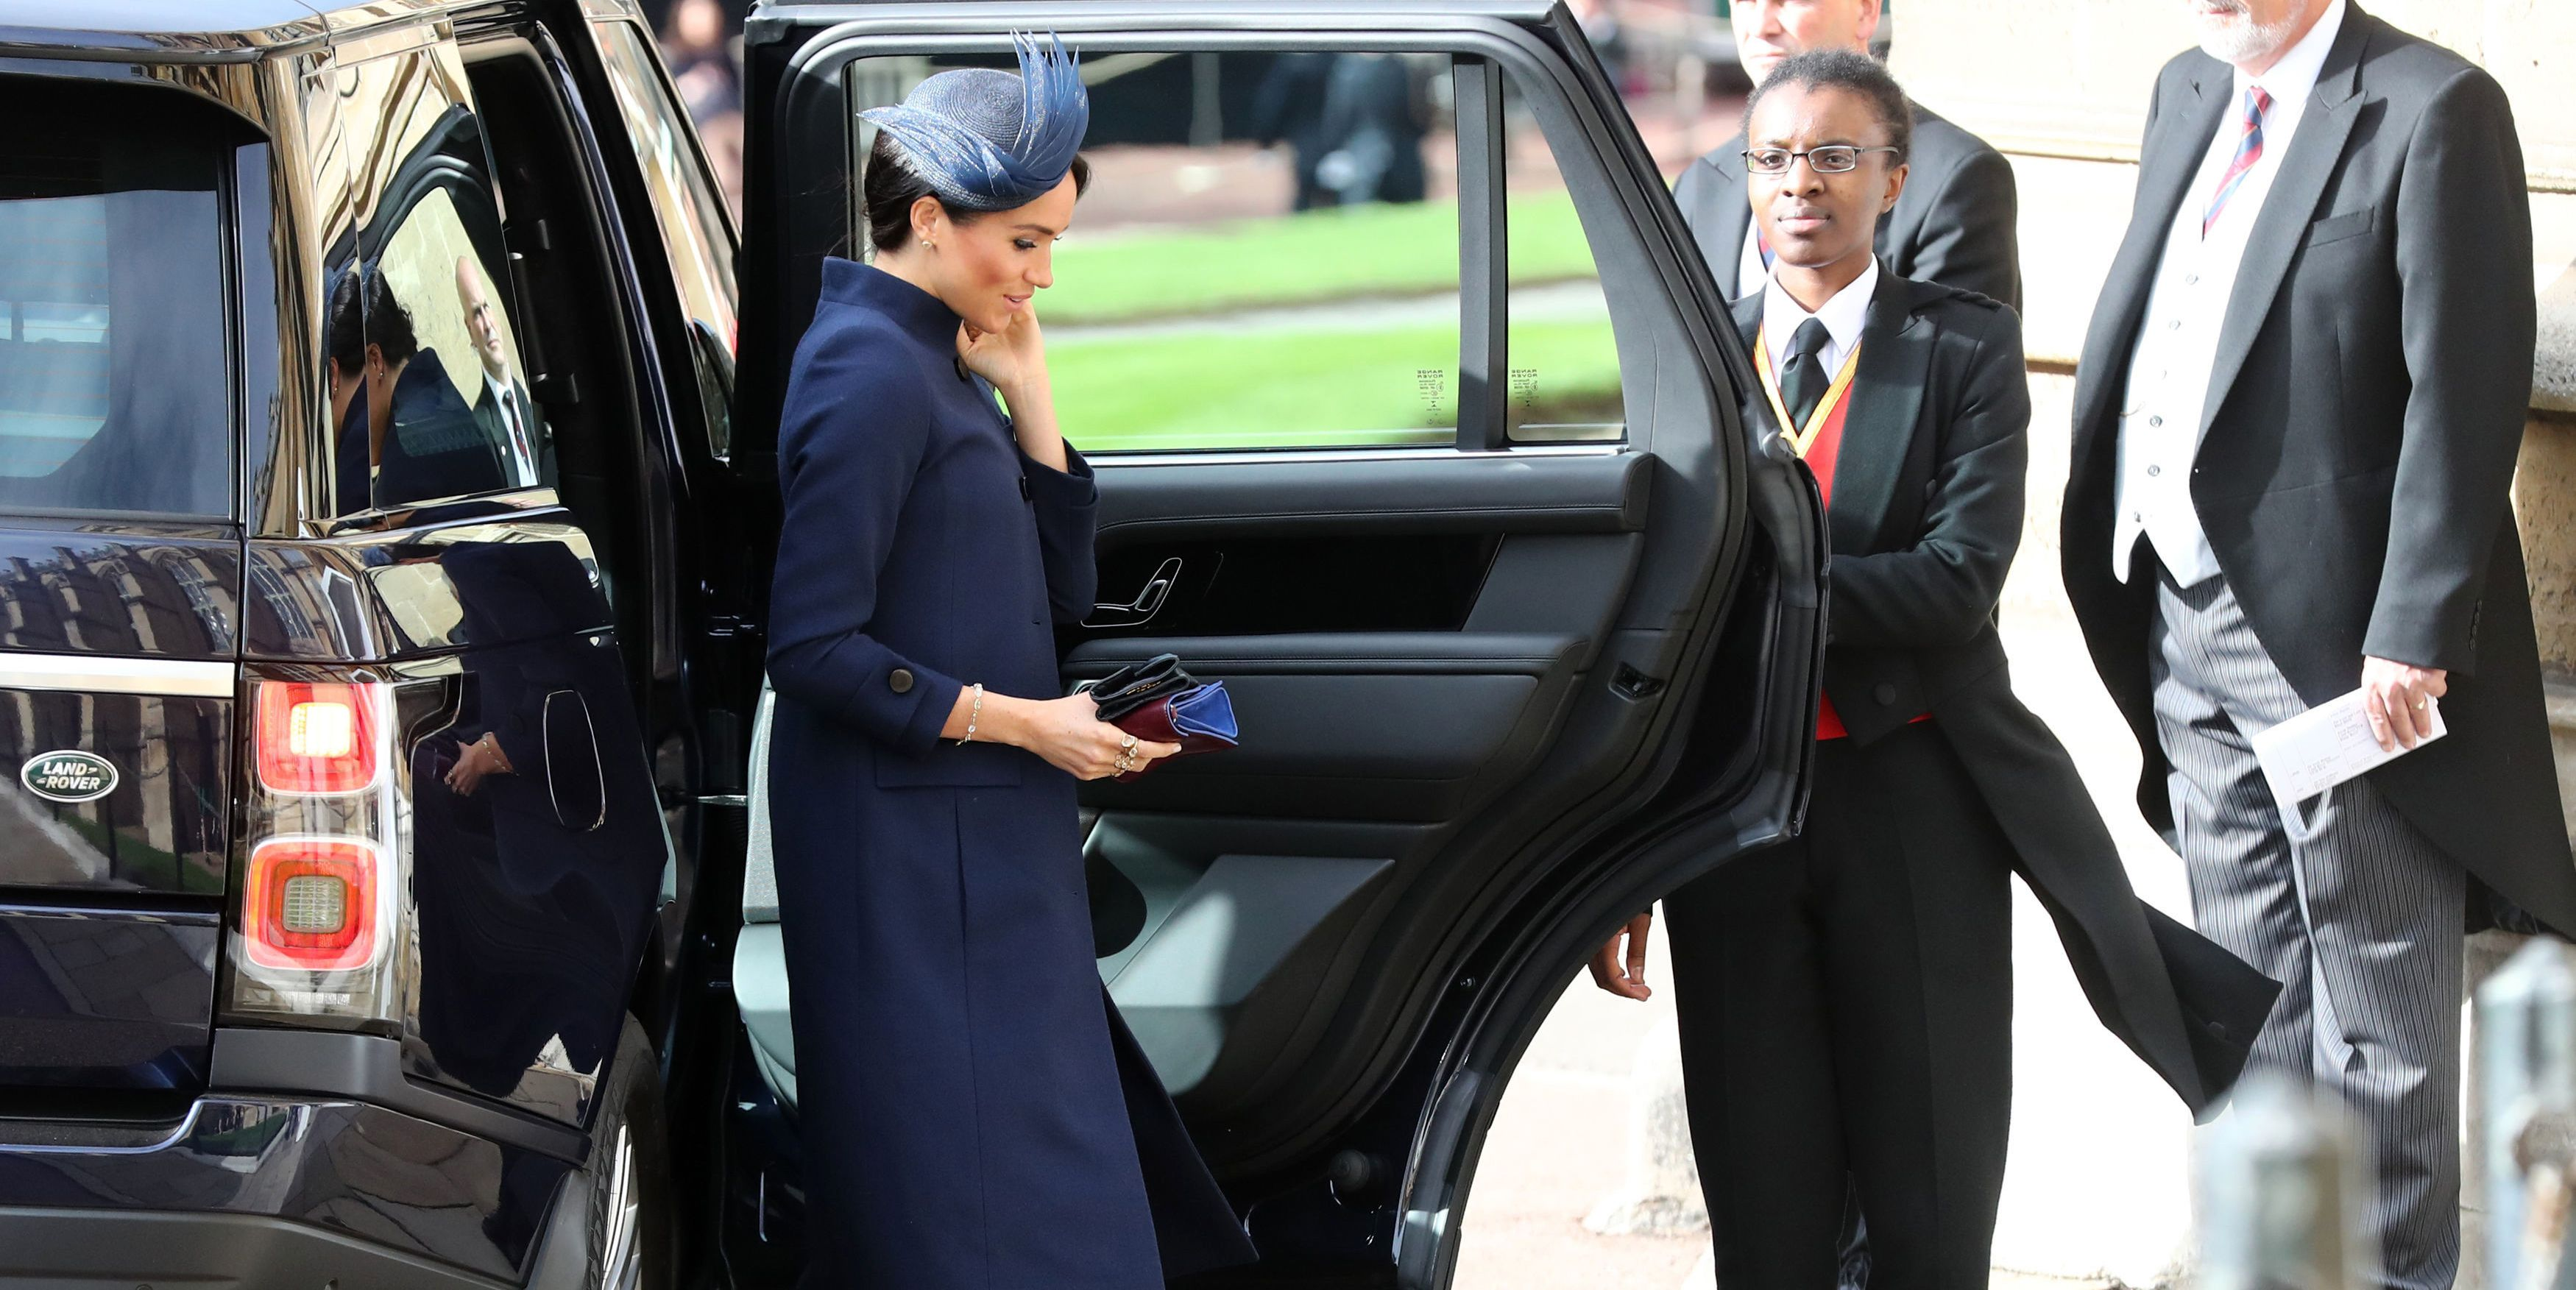 Meghan Markle Wears a Navy Givenchy Dress to Princess Eugenie's Royal Wedding